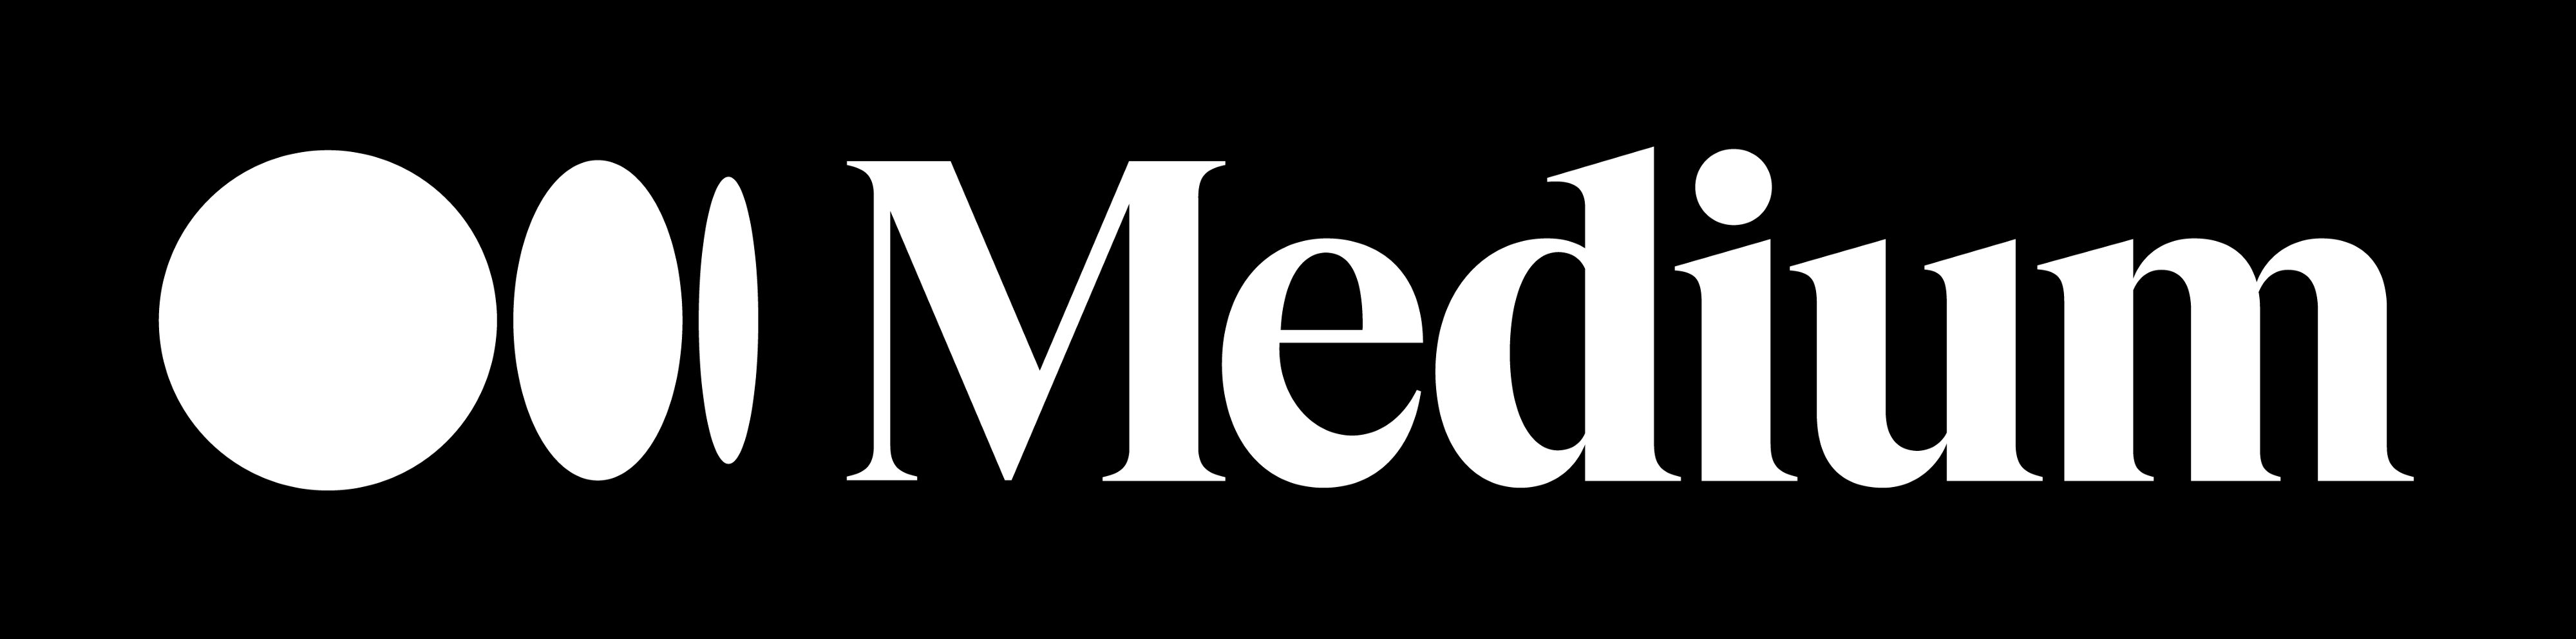 The Medium logo, white on a black background.